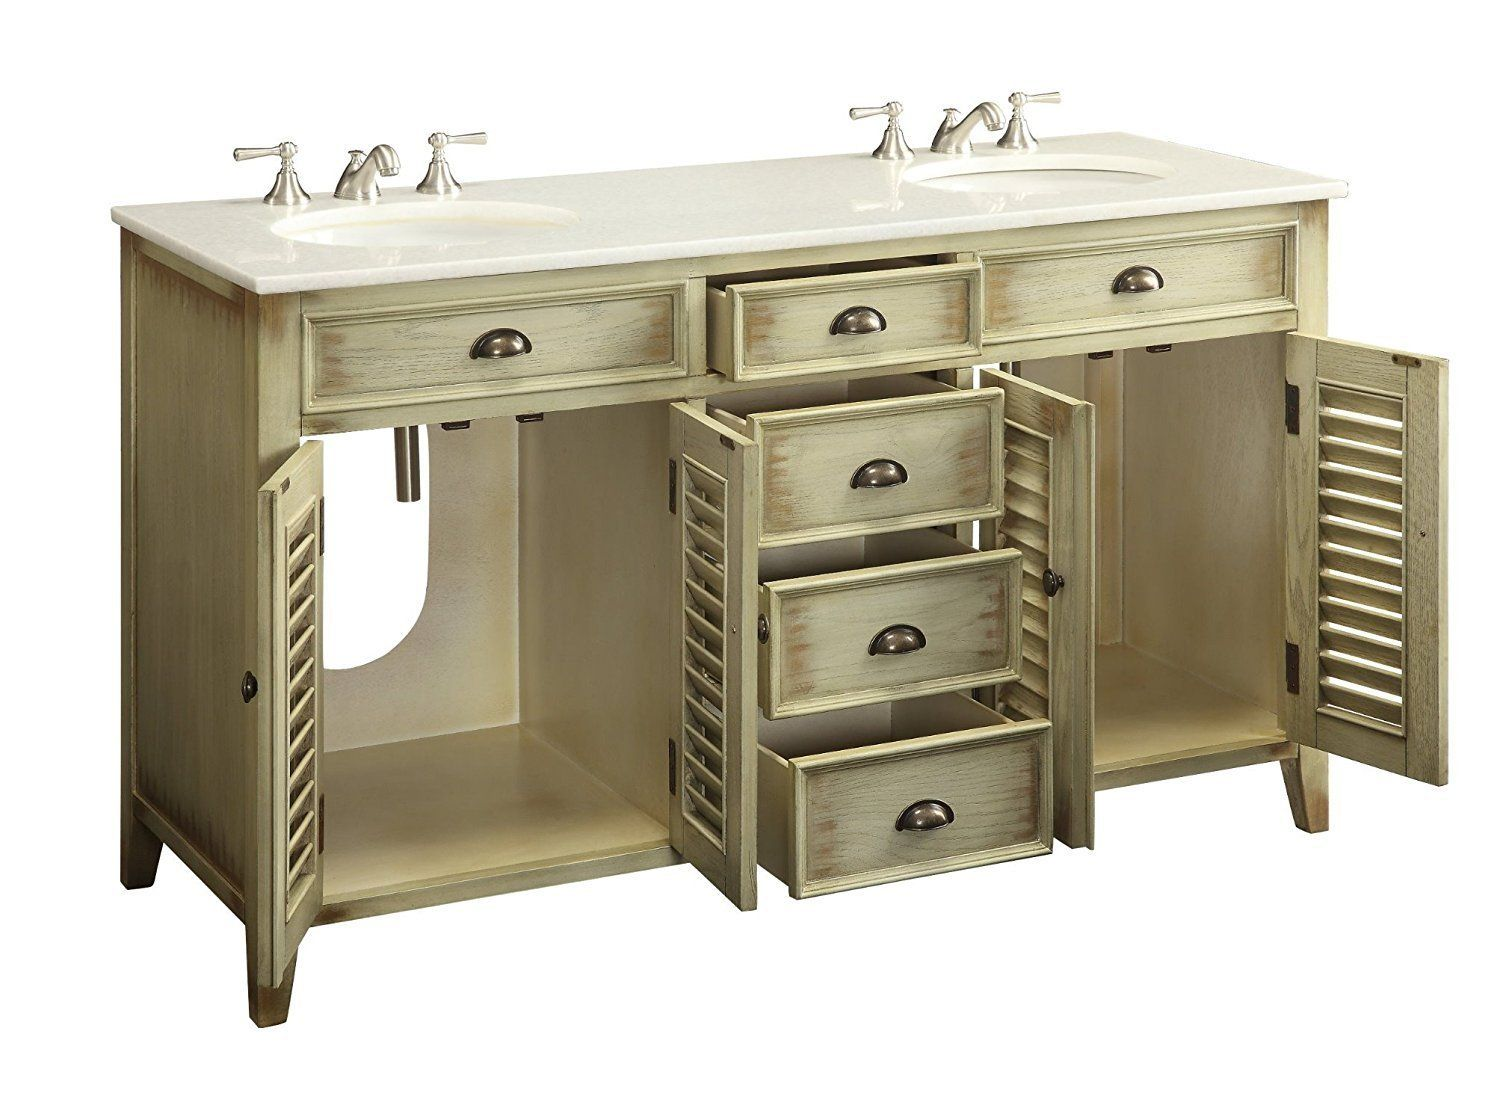 Gorgeous Beach Cottage Look Double Sink Bathroom Vanity - Bathroom vanities palm beach